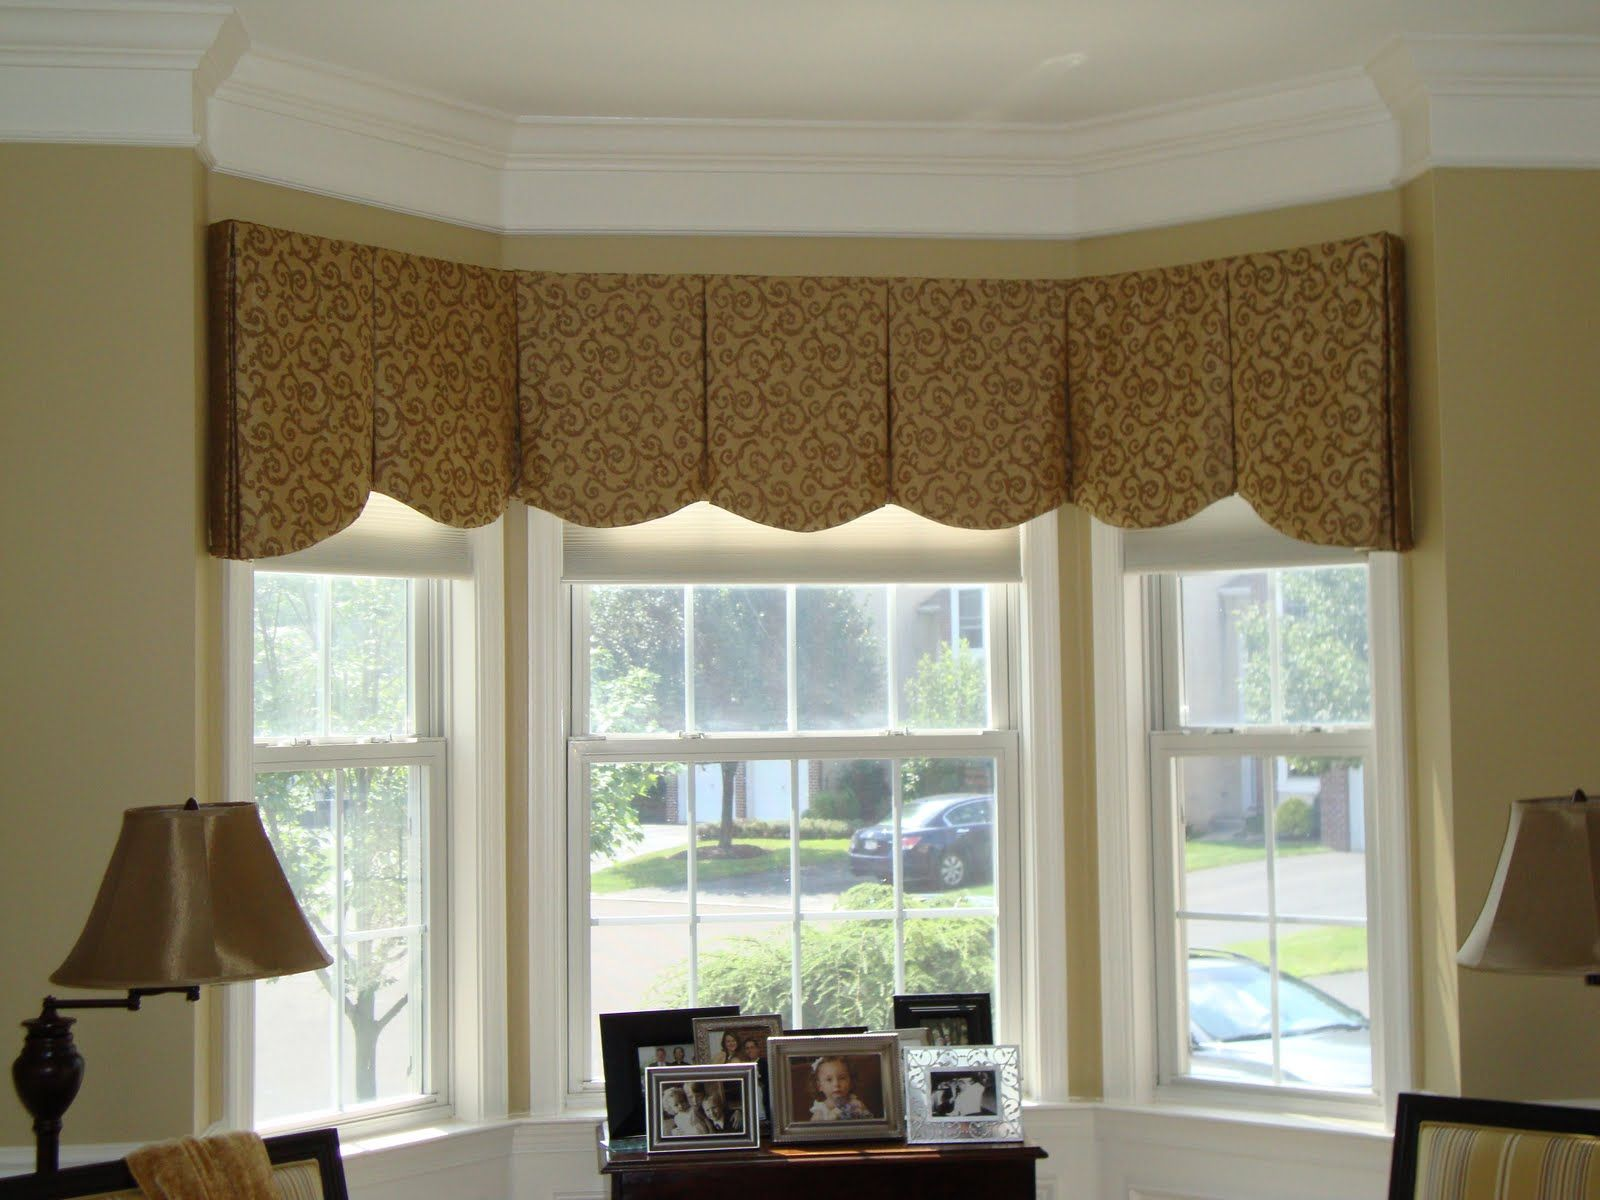 Window Treatment Ideas  Blog  Window Fashion Designs And More Magnificent Bay Window Ideas Living Room Decor Review